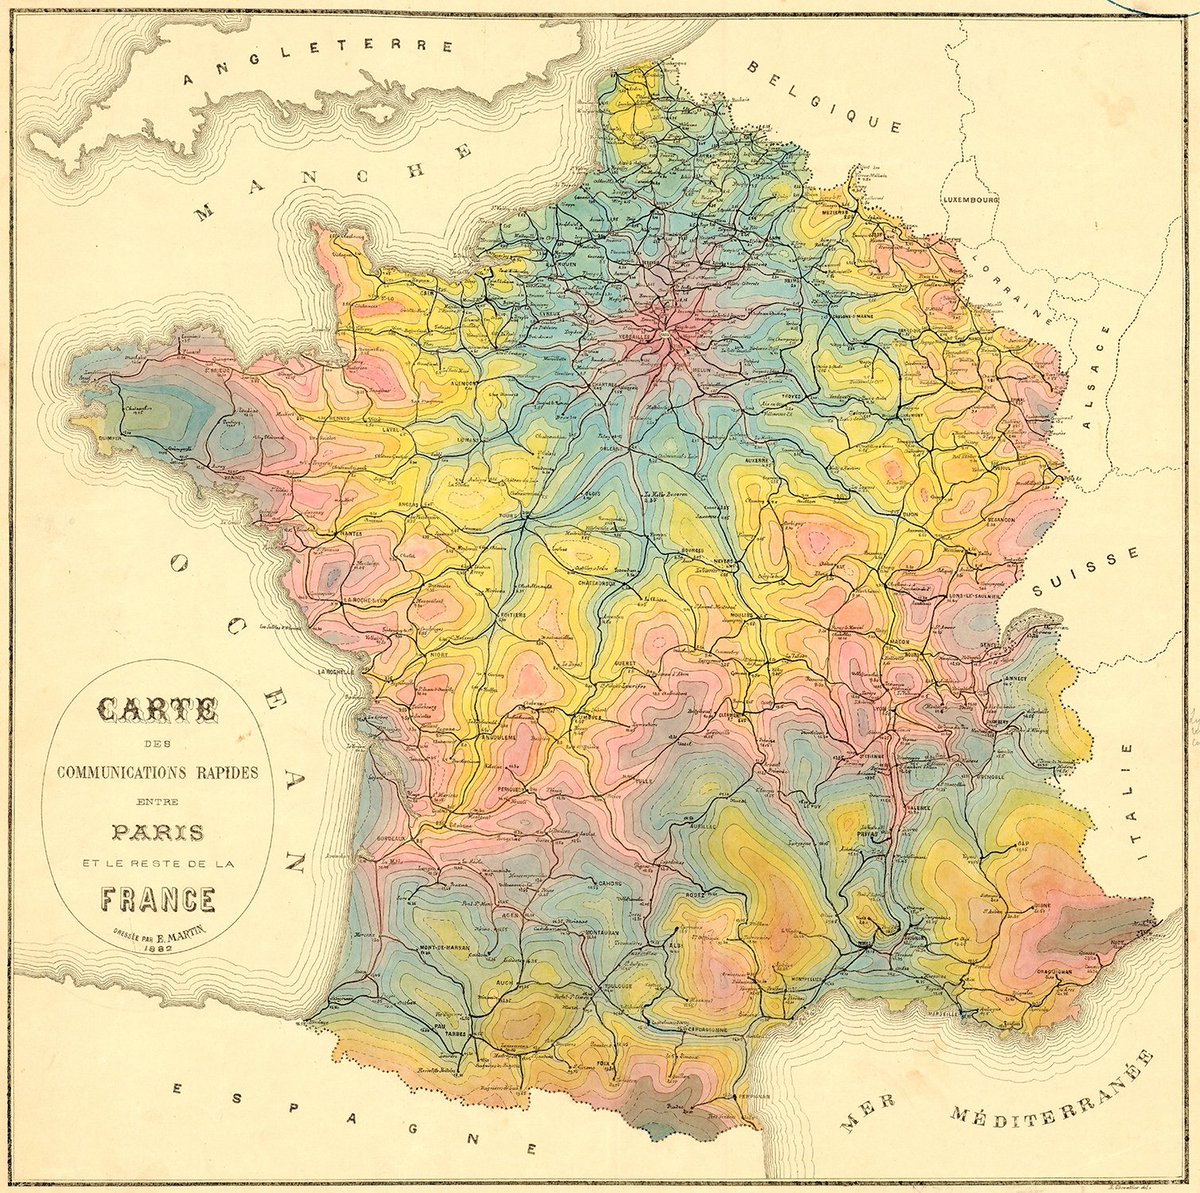 Transit maps on twitter i think im in love a stunning isochrone transit maps on twitter i think im in love a stunning isochrone map of travel times from paris by rail in 1882 making this a very early example of the gumiabroncs Choice Image